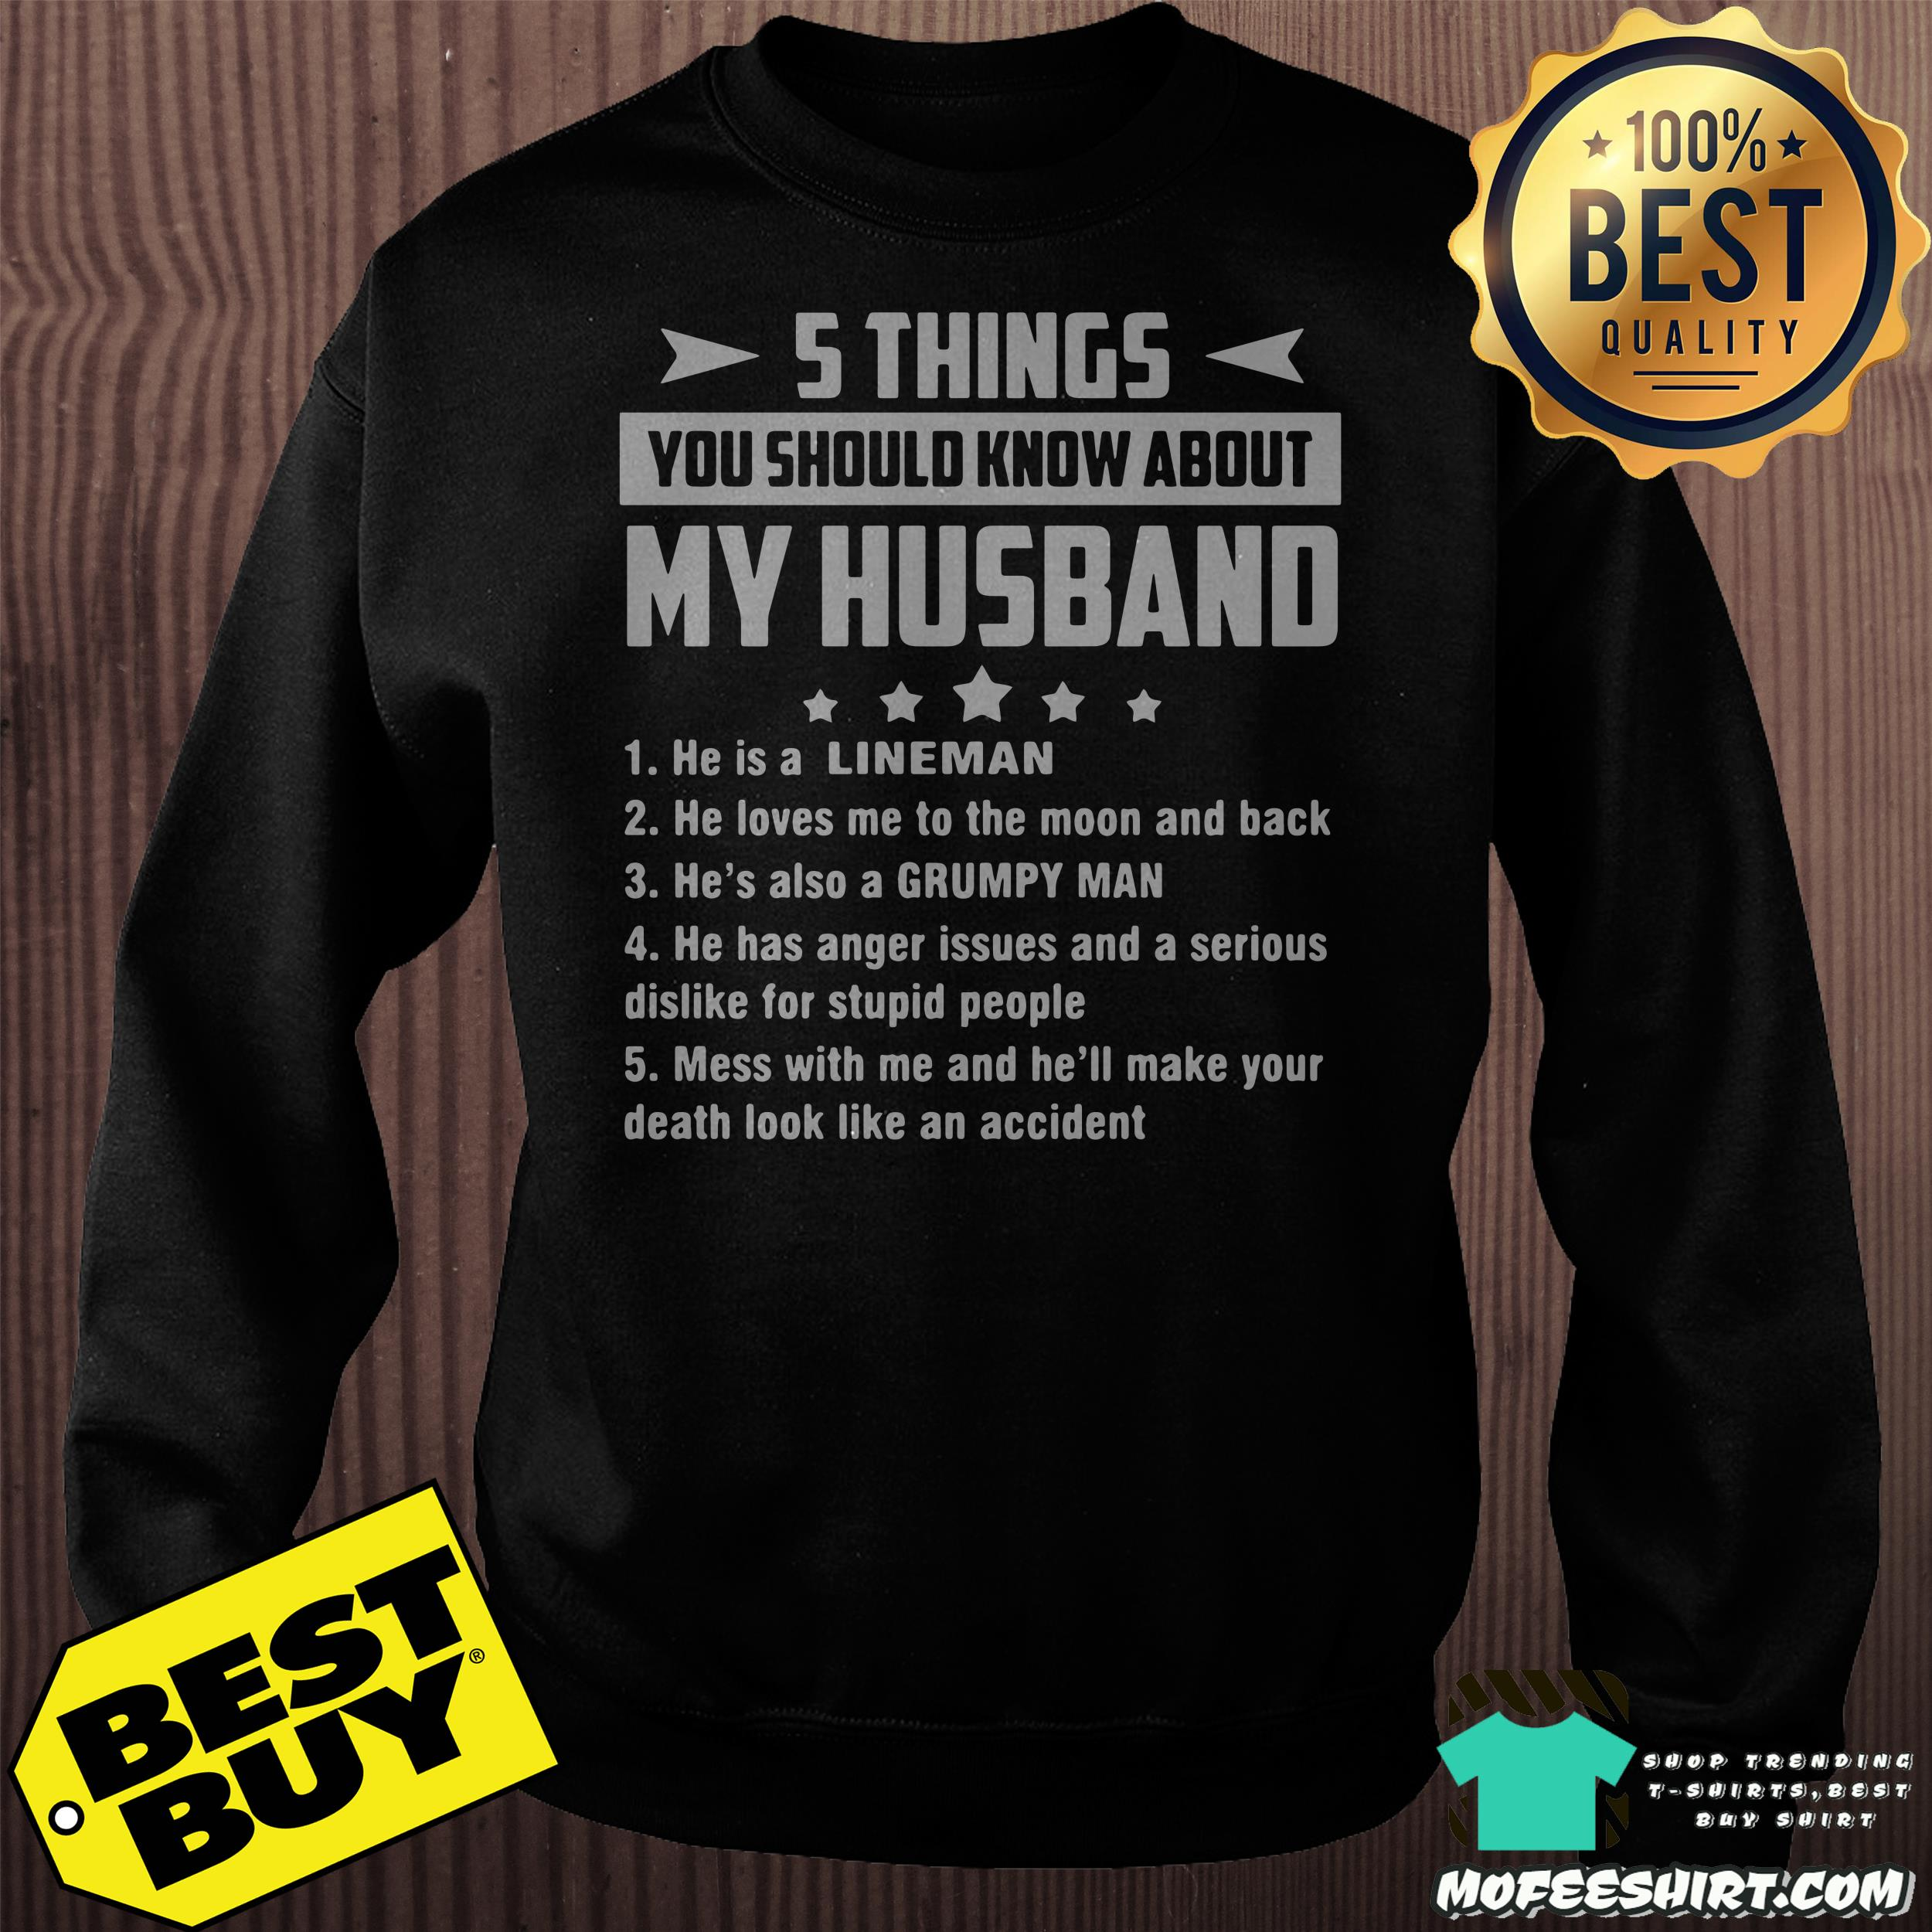 5 things you should know about my husband he is a lineman sweatshirt - 5 things you should know about my husband he is a lineman shirt